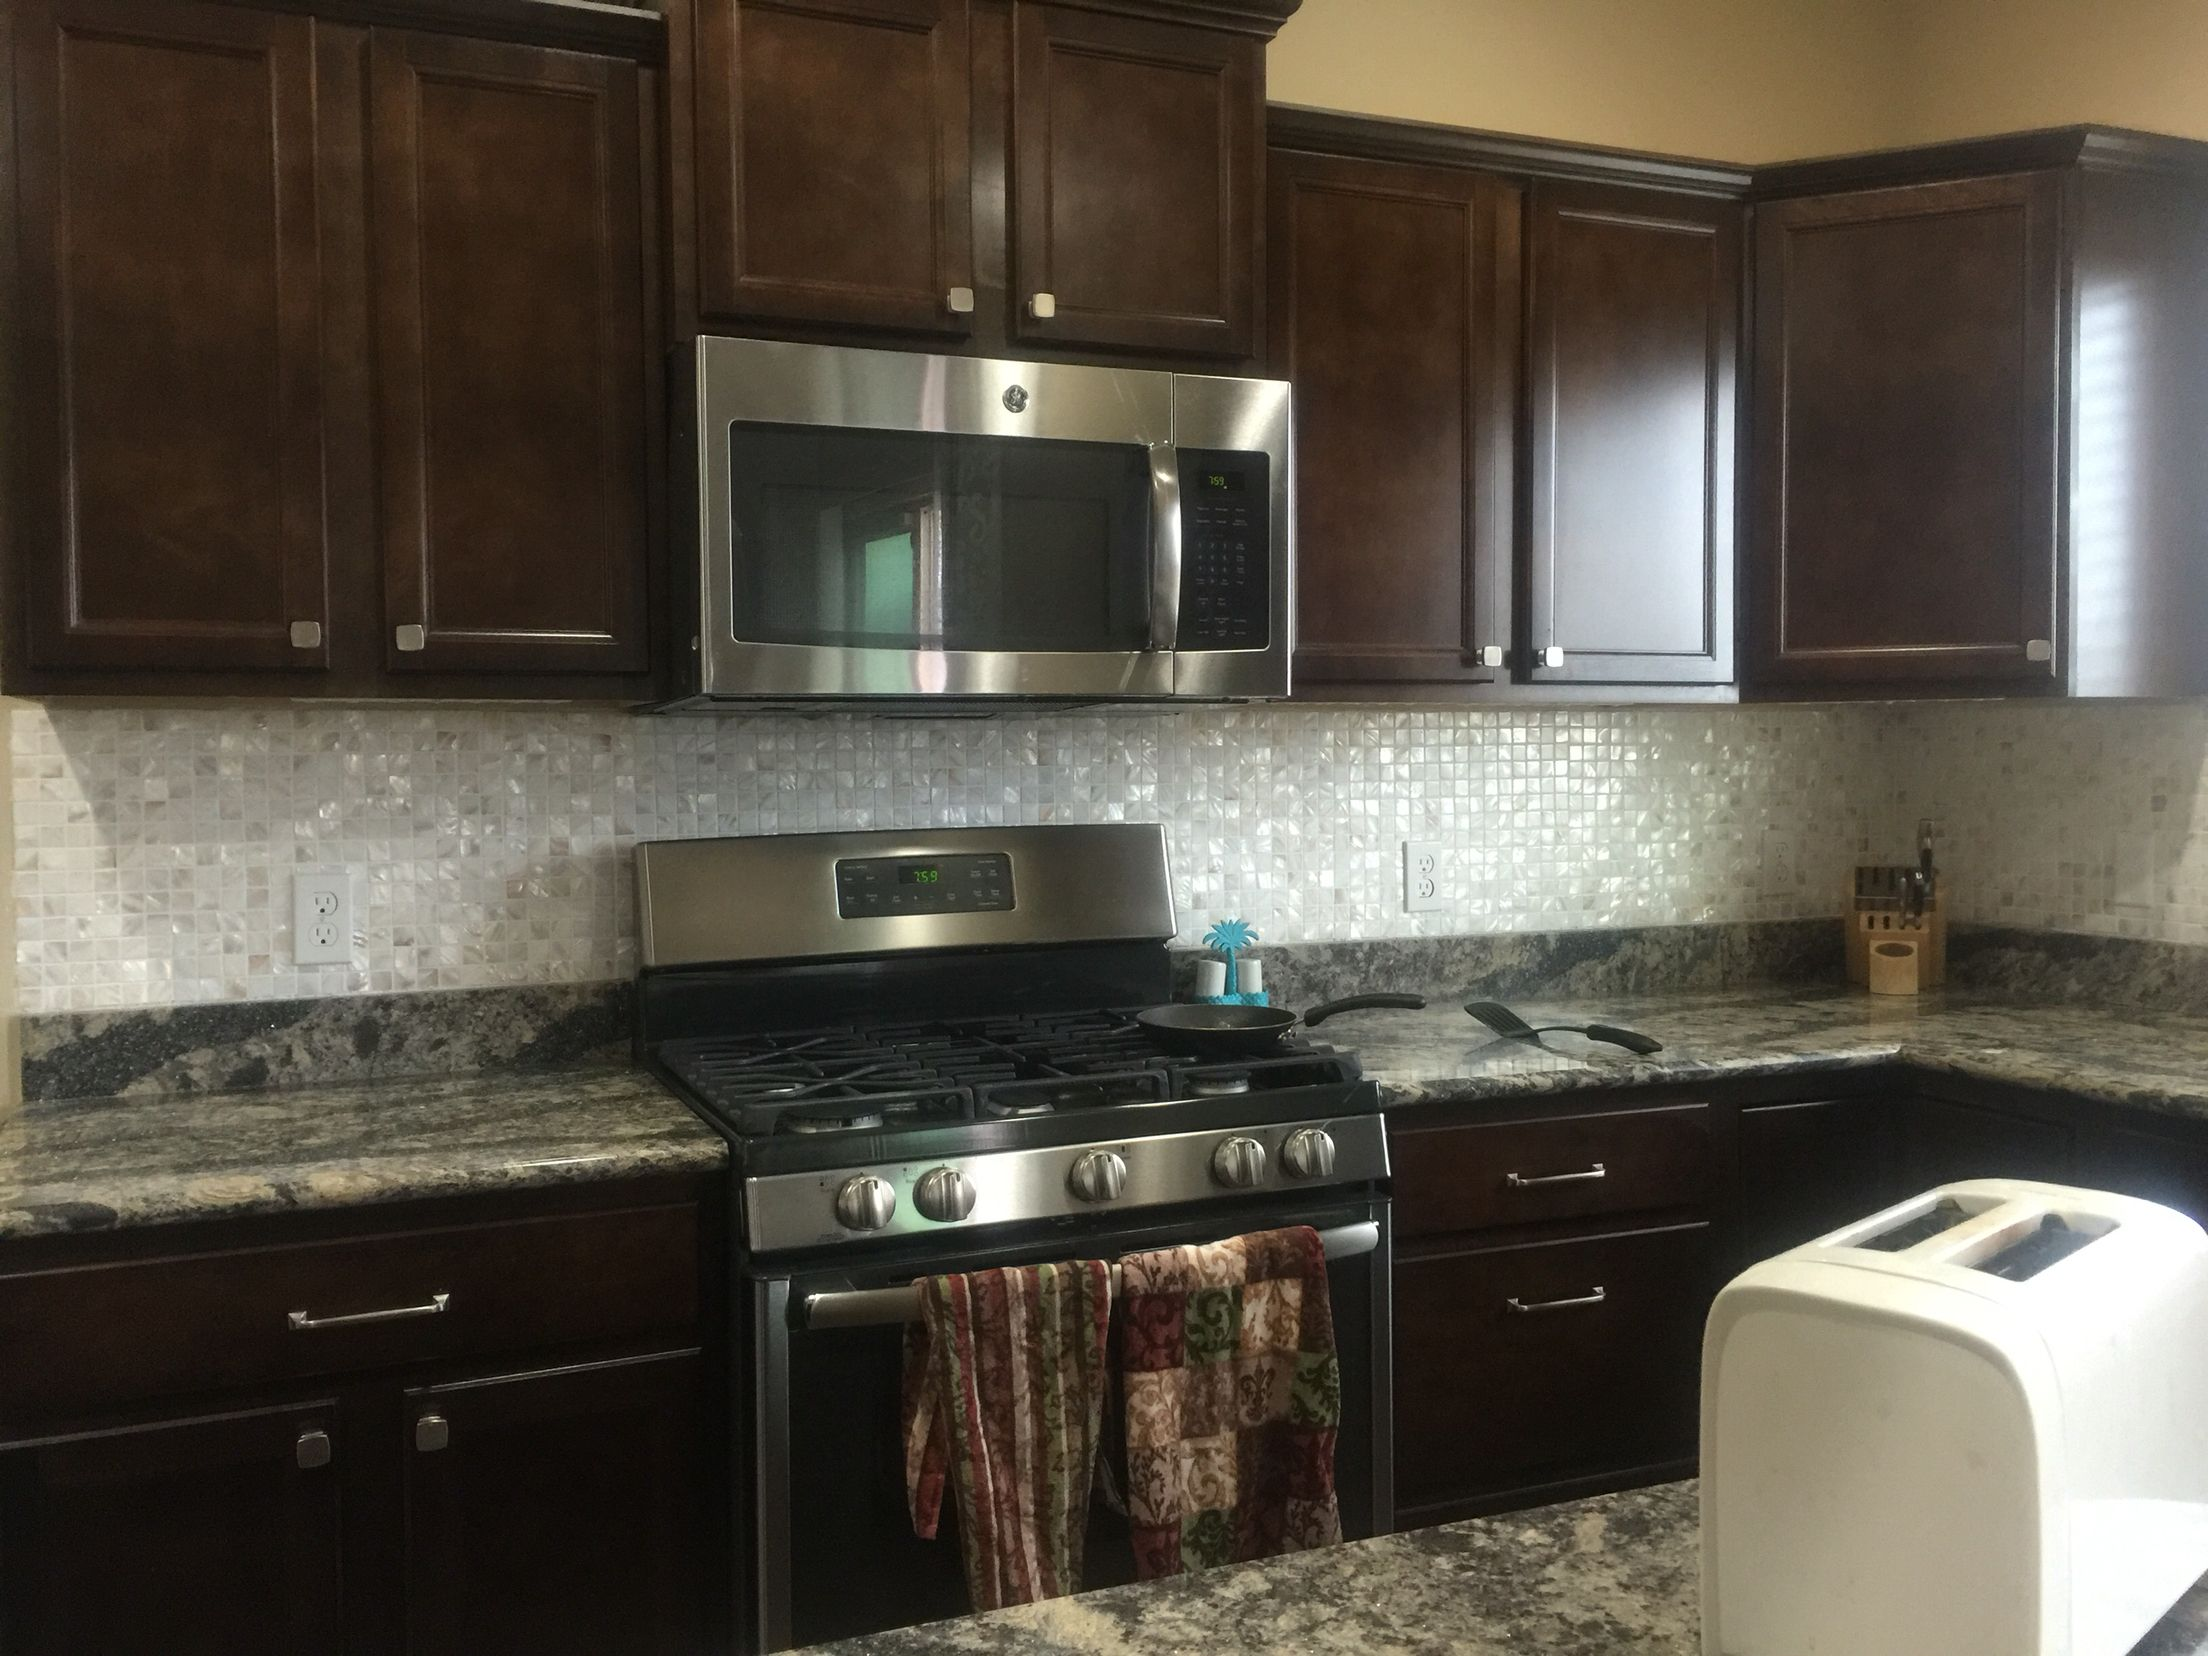 Dark Cabinets And Dyi Mother Of Pearl Kitchen Backsplash Mother Of Pearl Backsplash Dyi